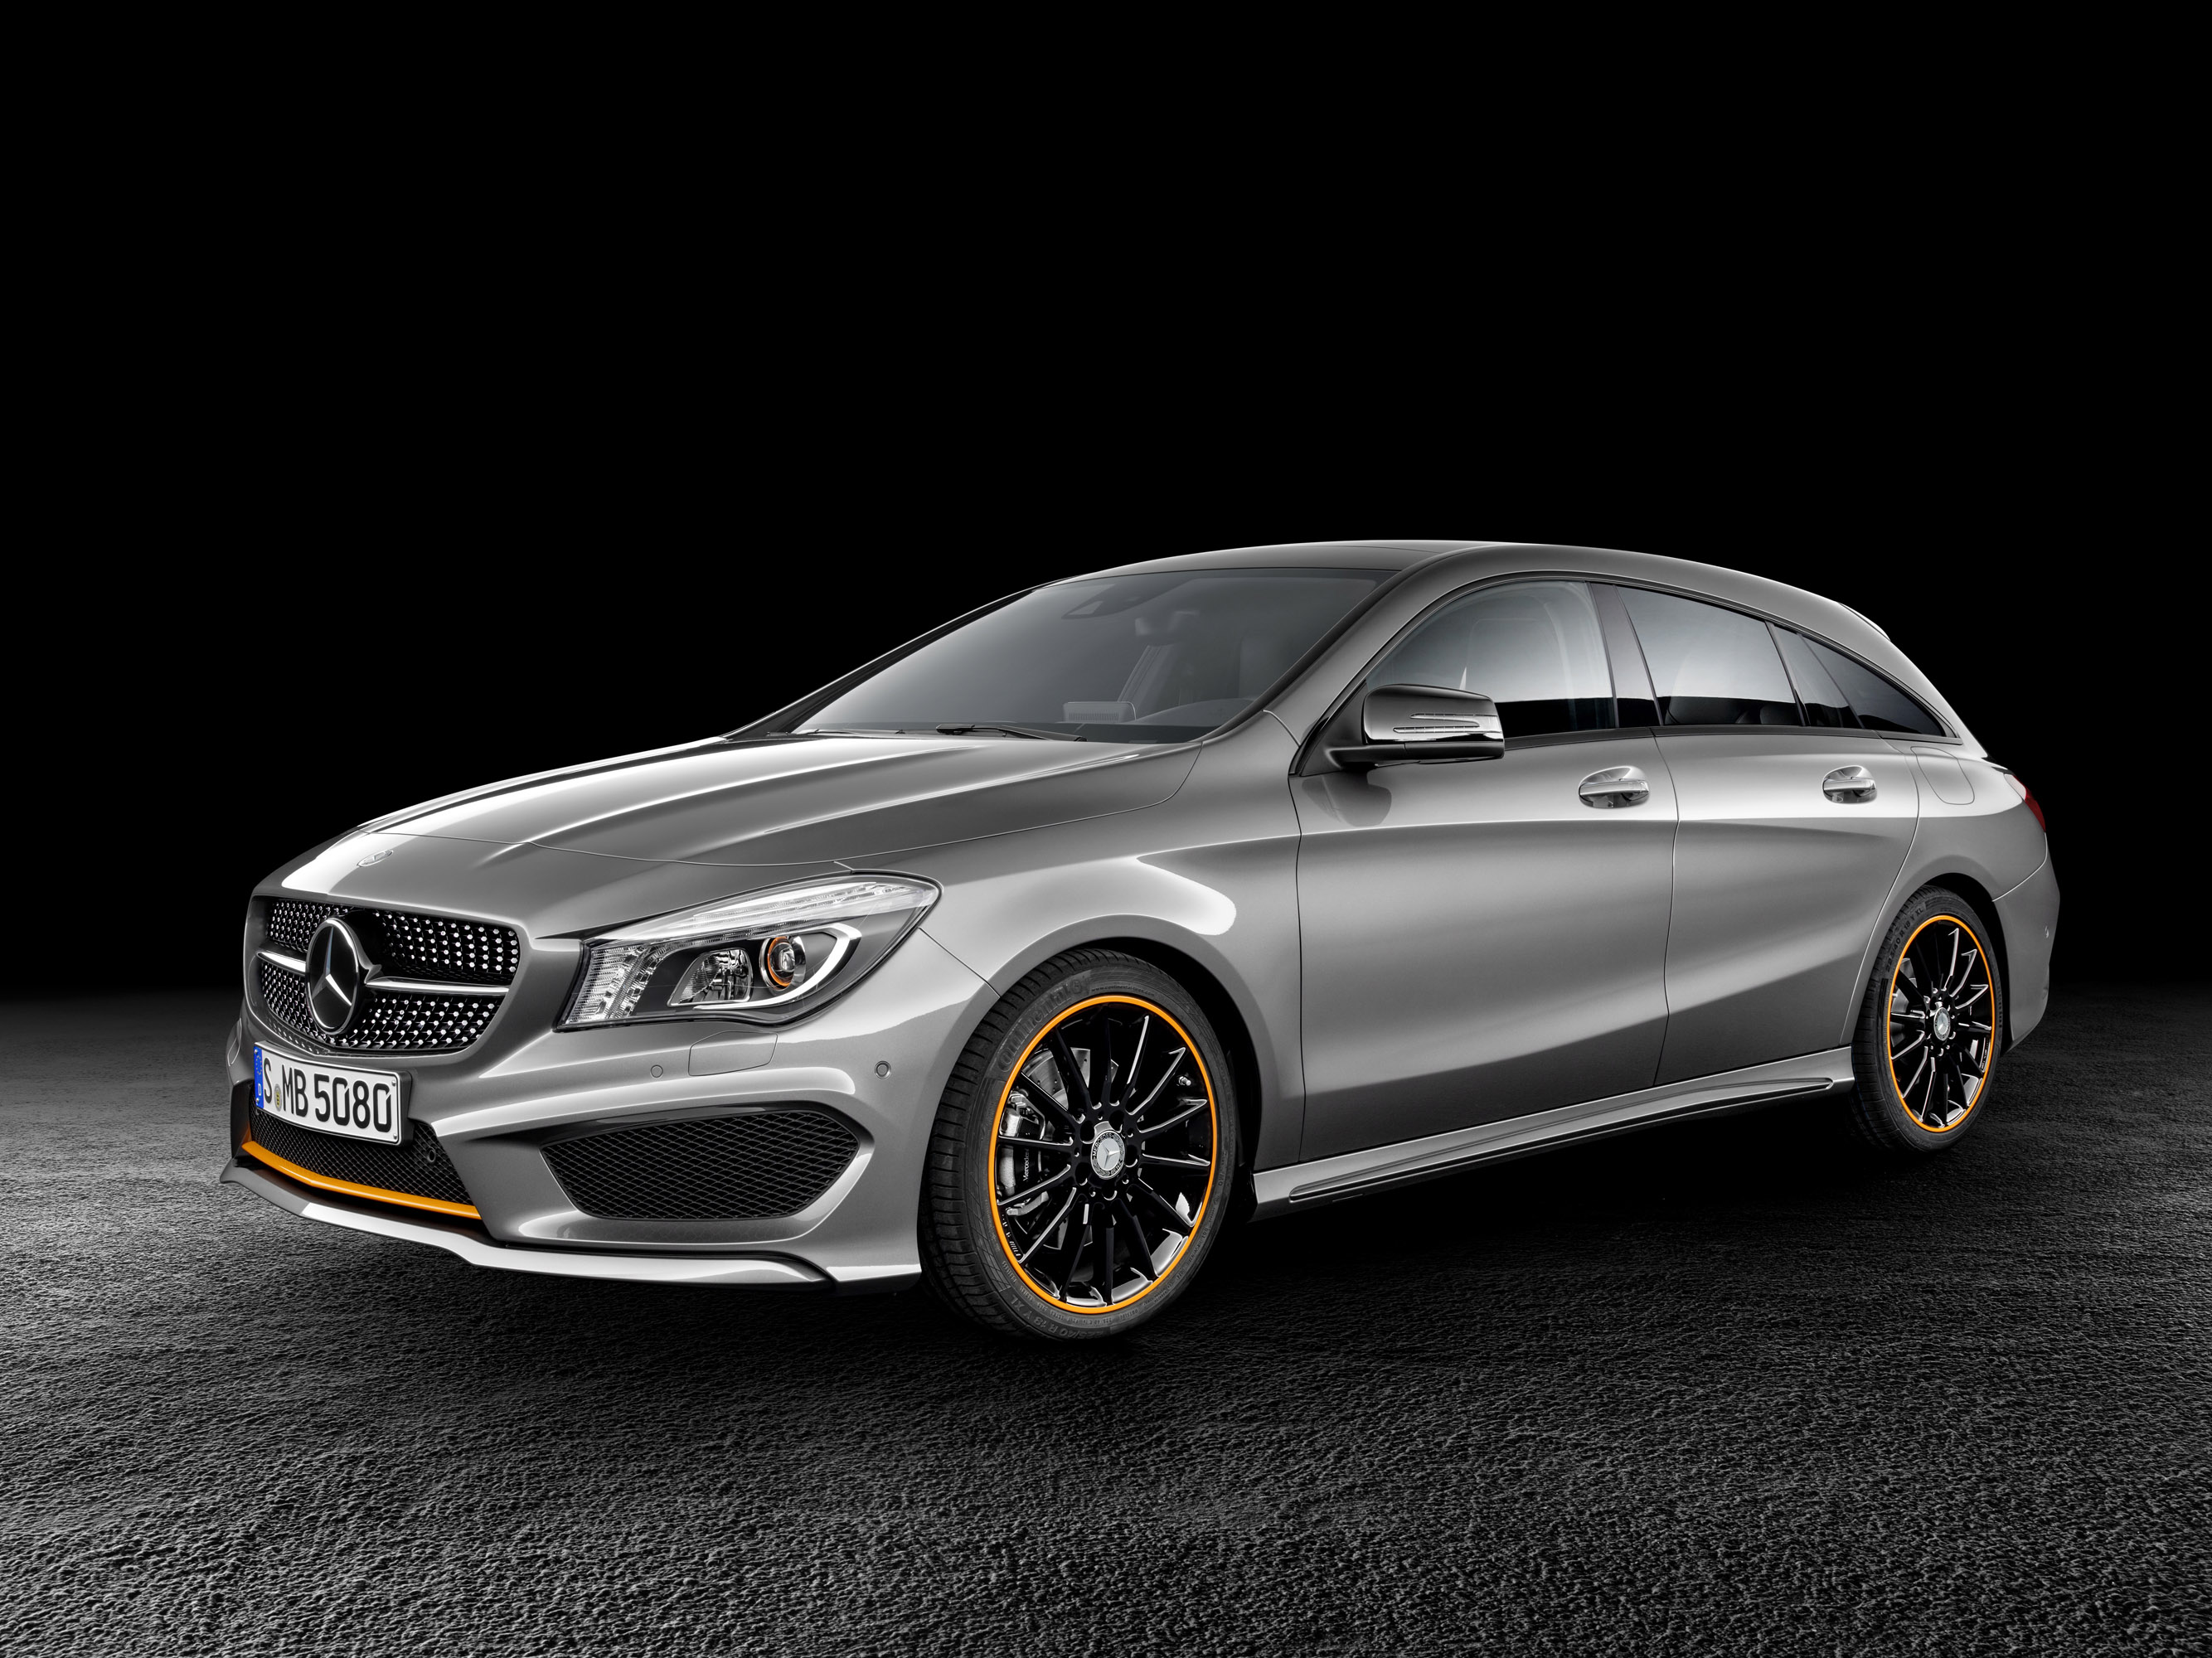 2015 mercedes benz cla shooting brake the fifth member of the successful compact models family. Black Bedroom Furniture Sets. Home Design Ideas